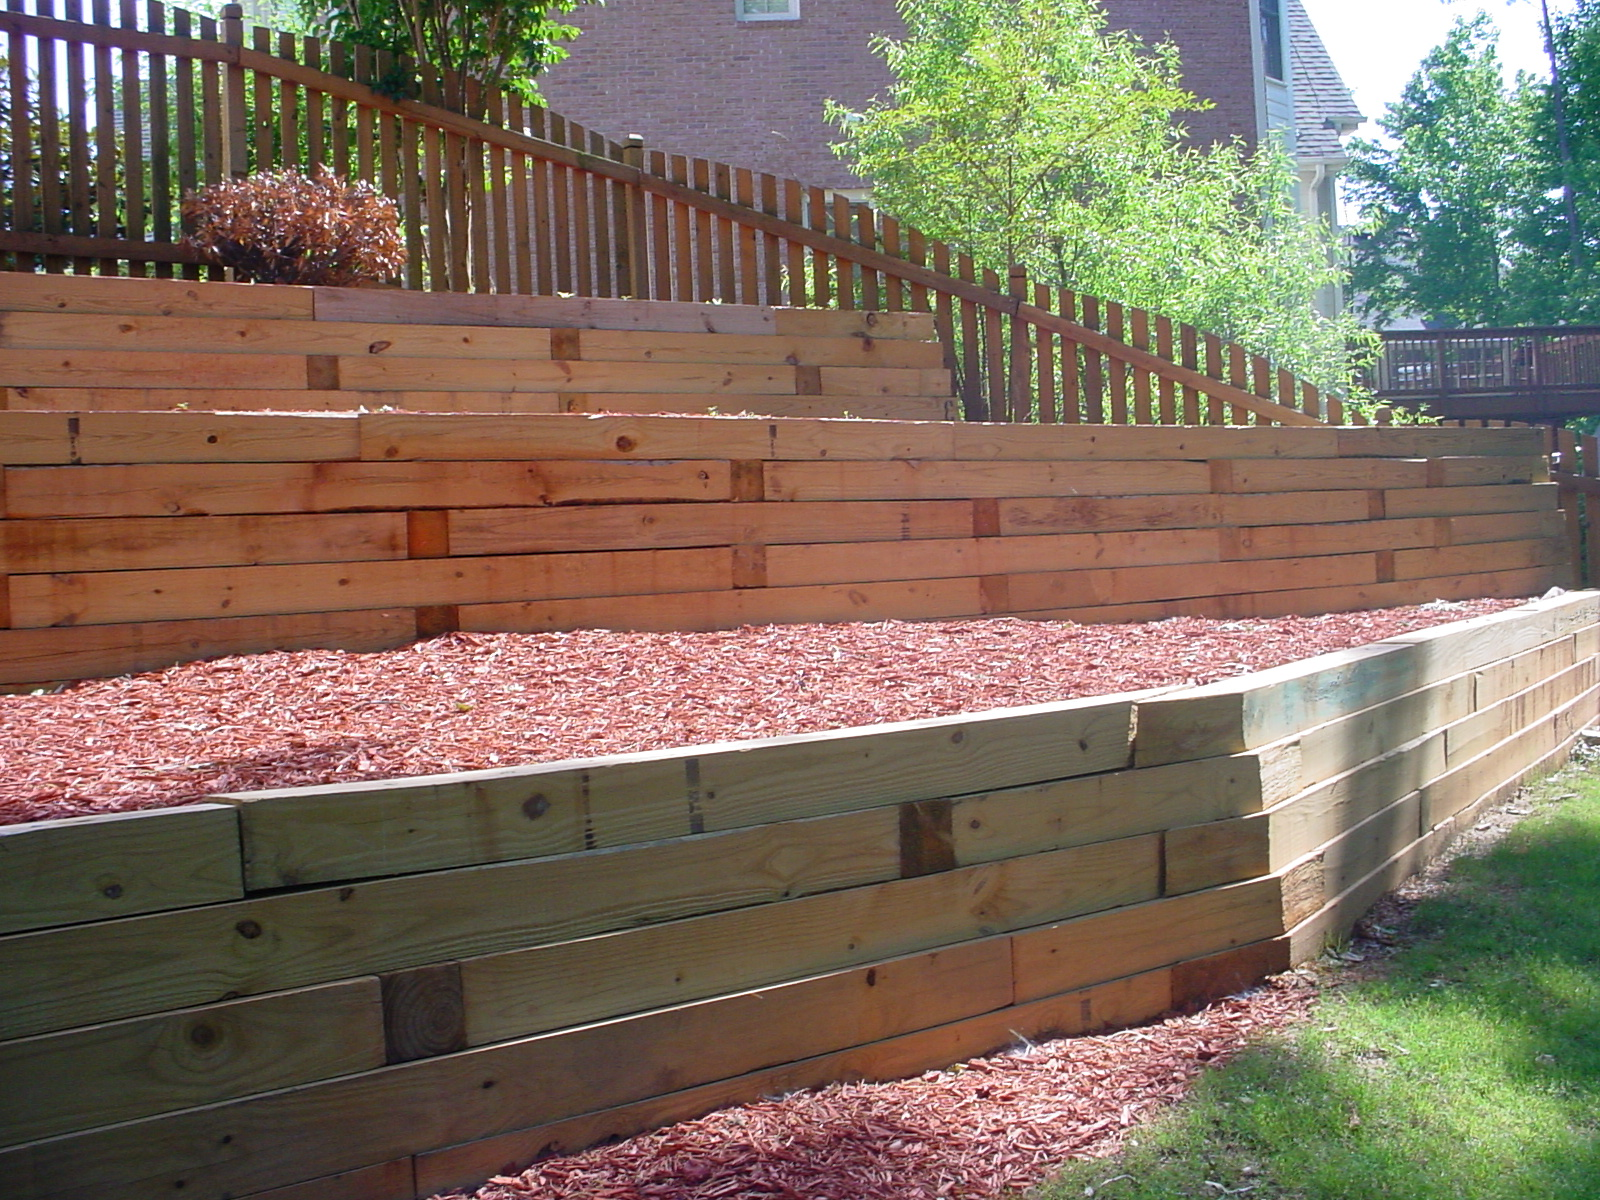 Timber Retaining Wall Designs retaining wall design Wood Retaining Wall Design Example Photo 4